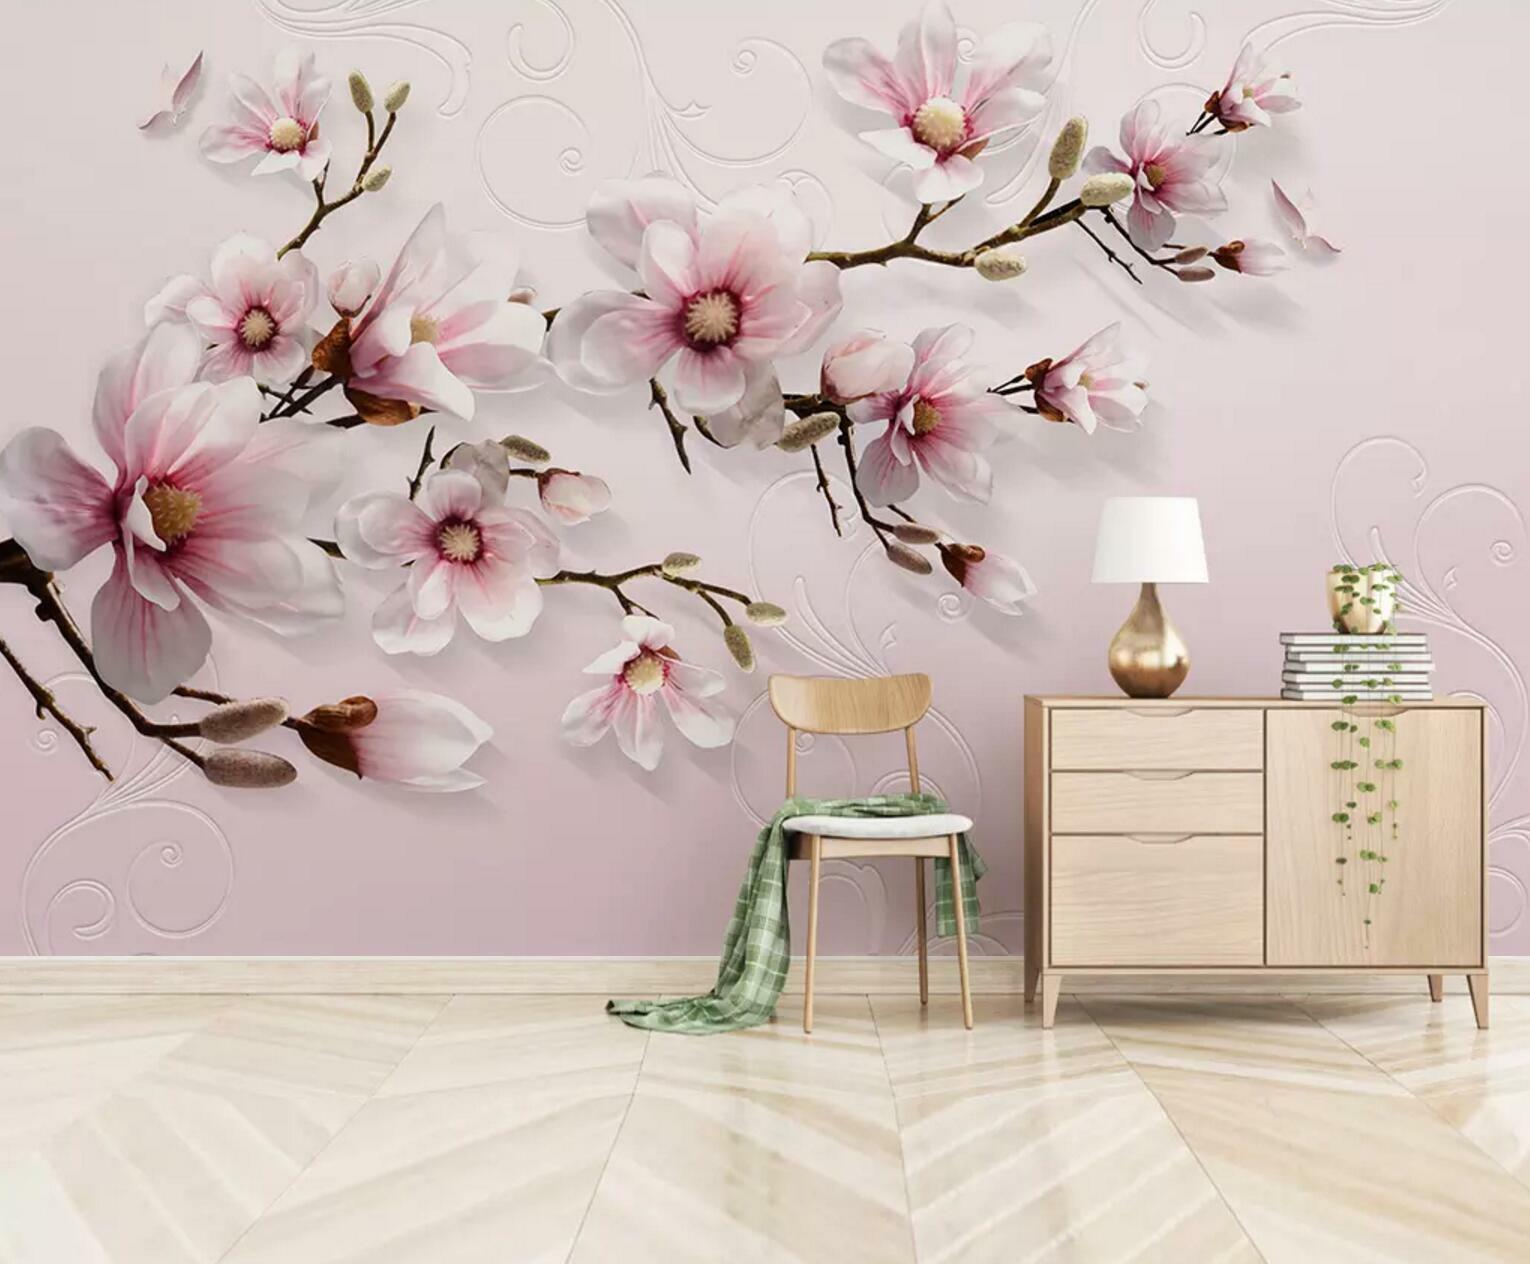 3D Blooming Lily 8 Wall Paper Exclusive MXY Wallpaper Mural Decal Indoor Wall AJ